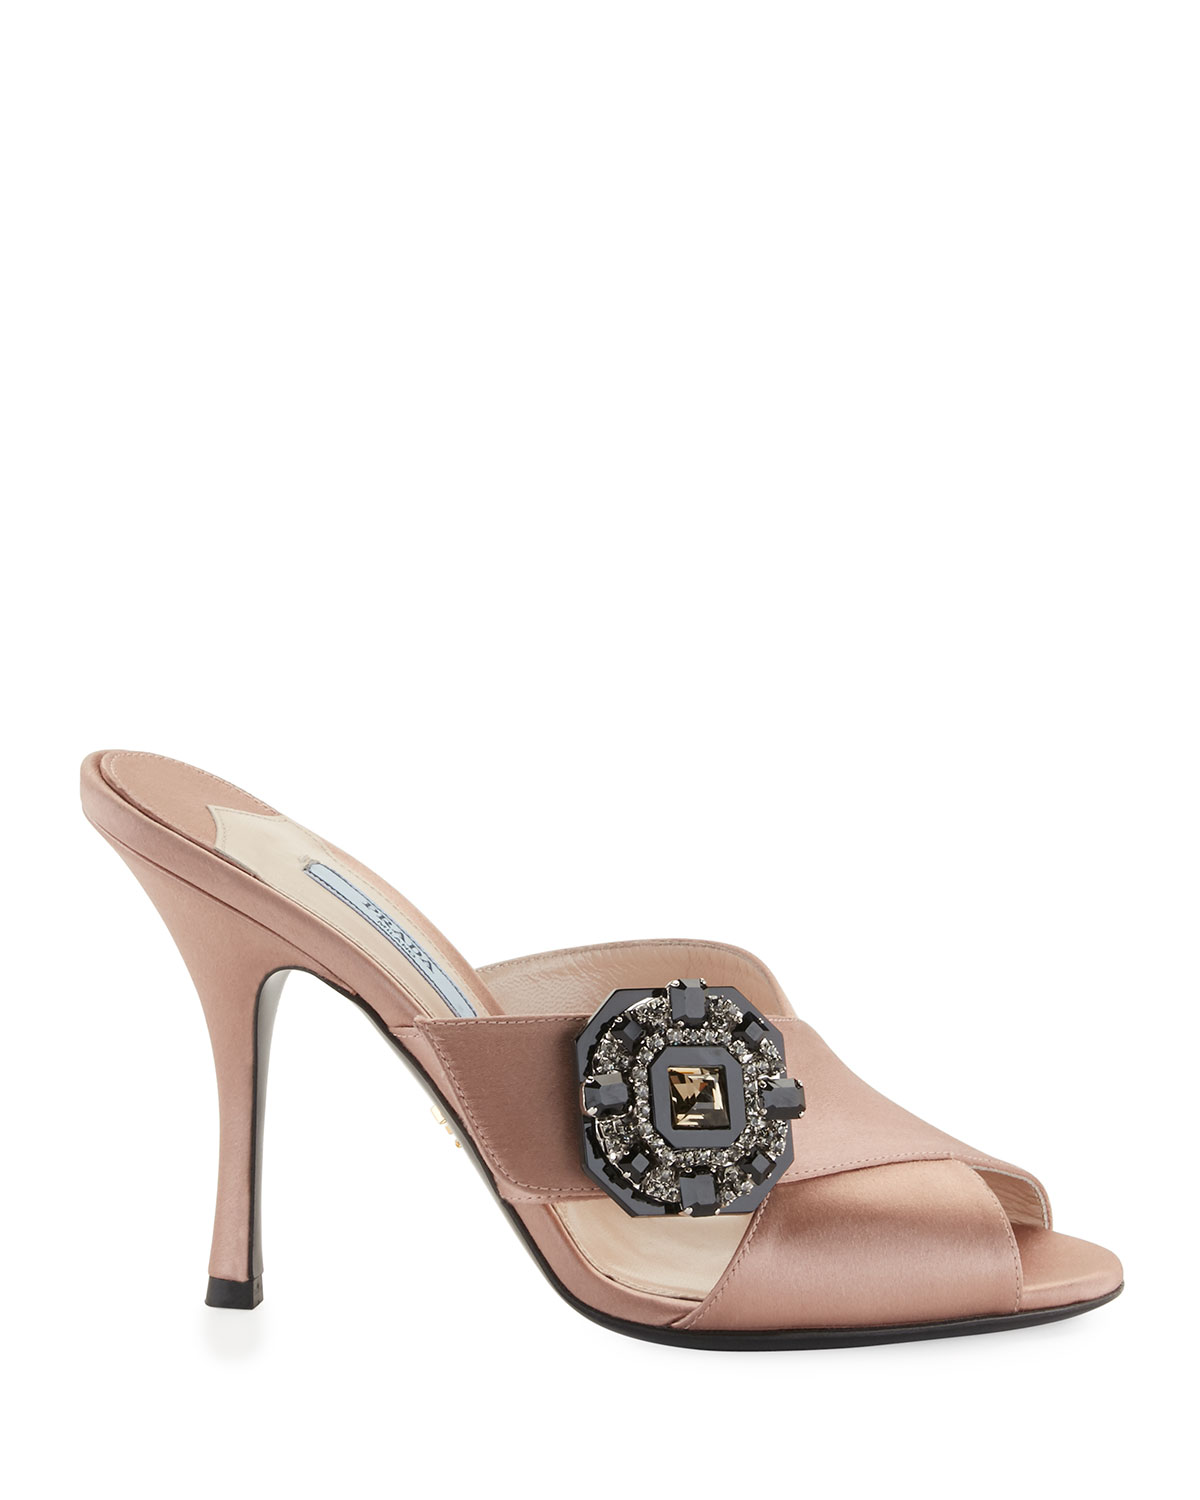 Prada Jeweled Satin 100mm Slide Sandals, Nude